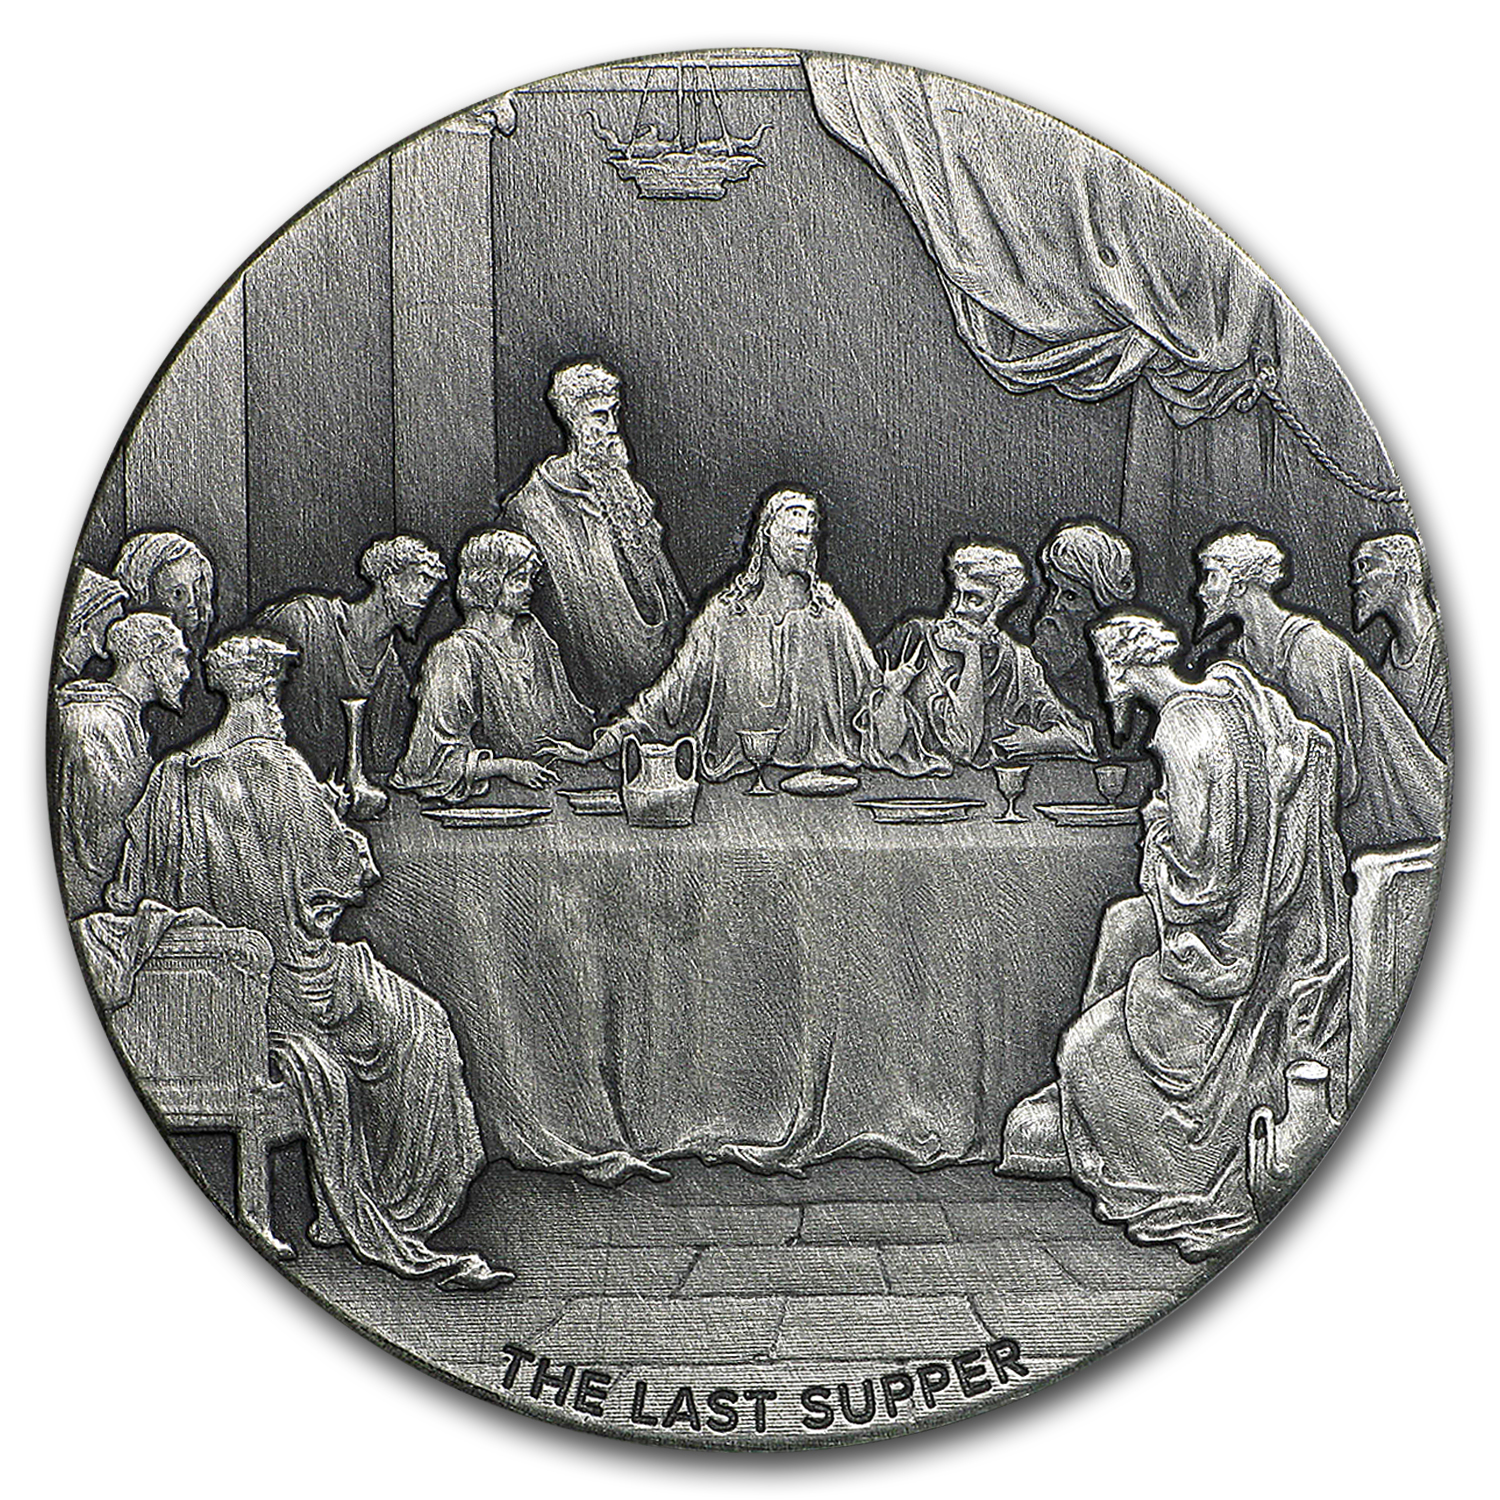 2 oz Silver Coin – Biblical Series (The Last Supper)